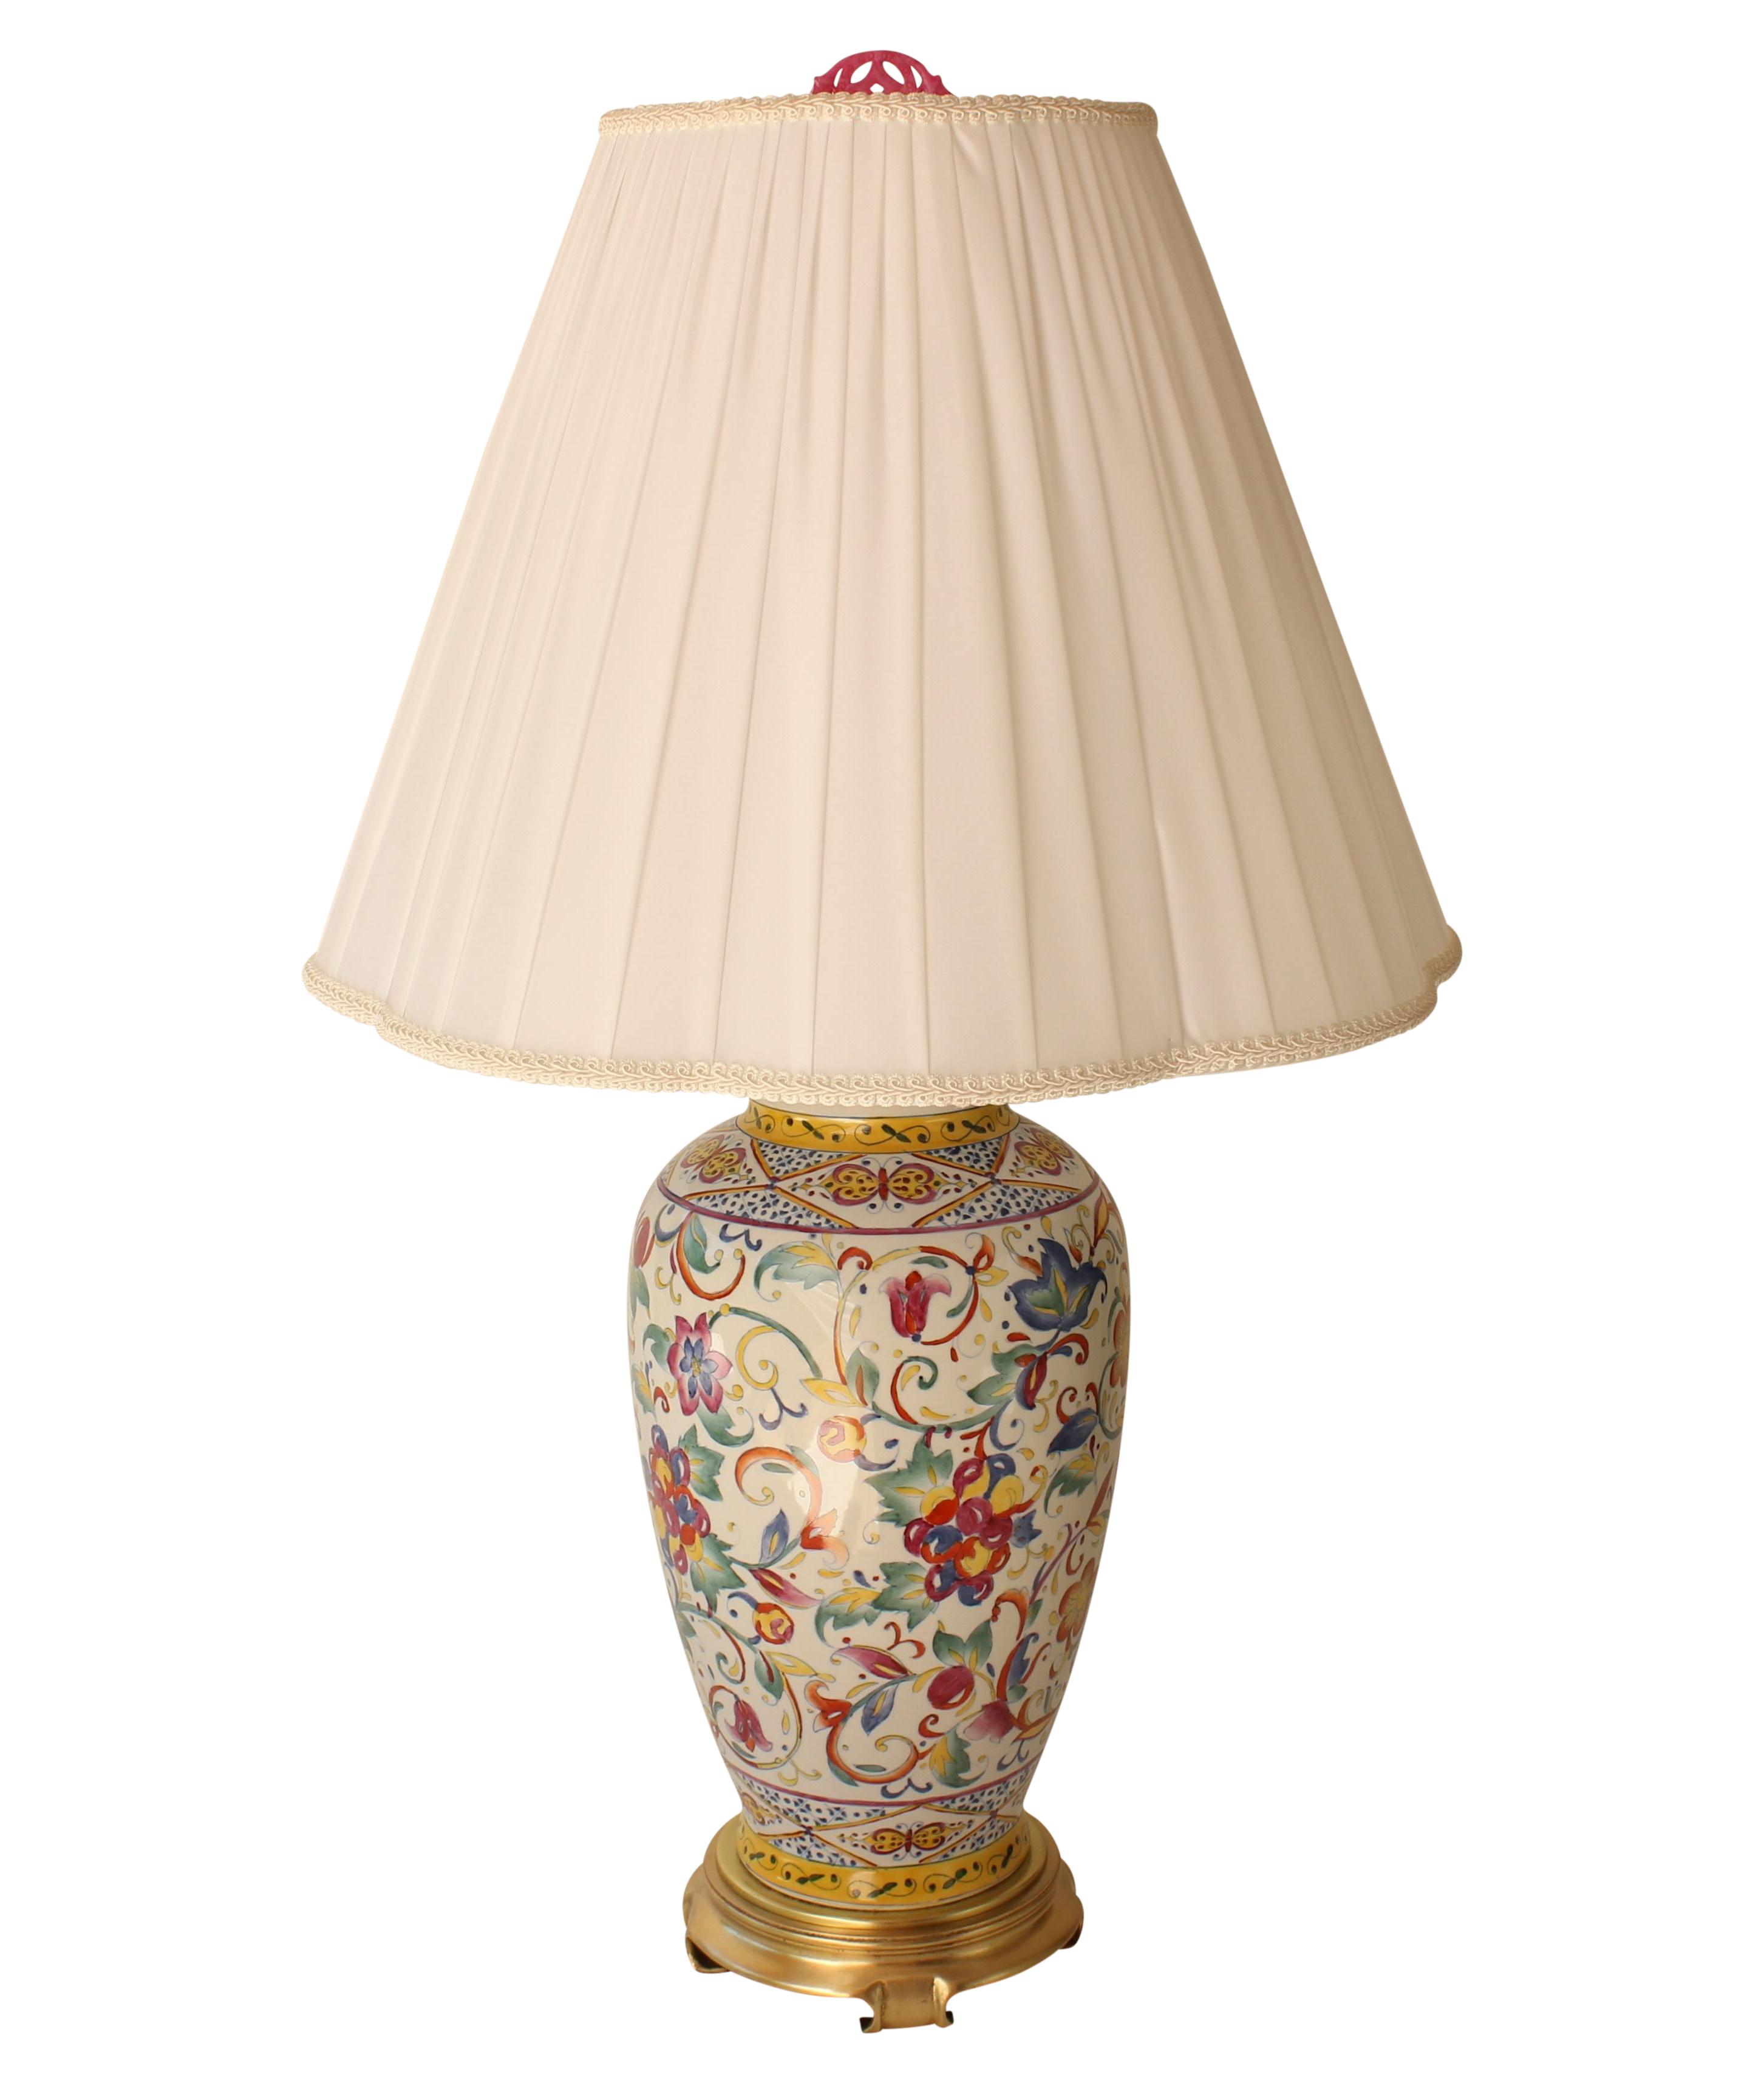 Frederick cooper floral table lamp chairish mozeypictures Gallery